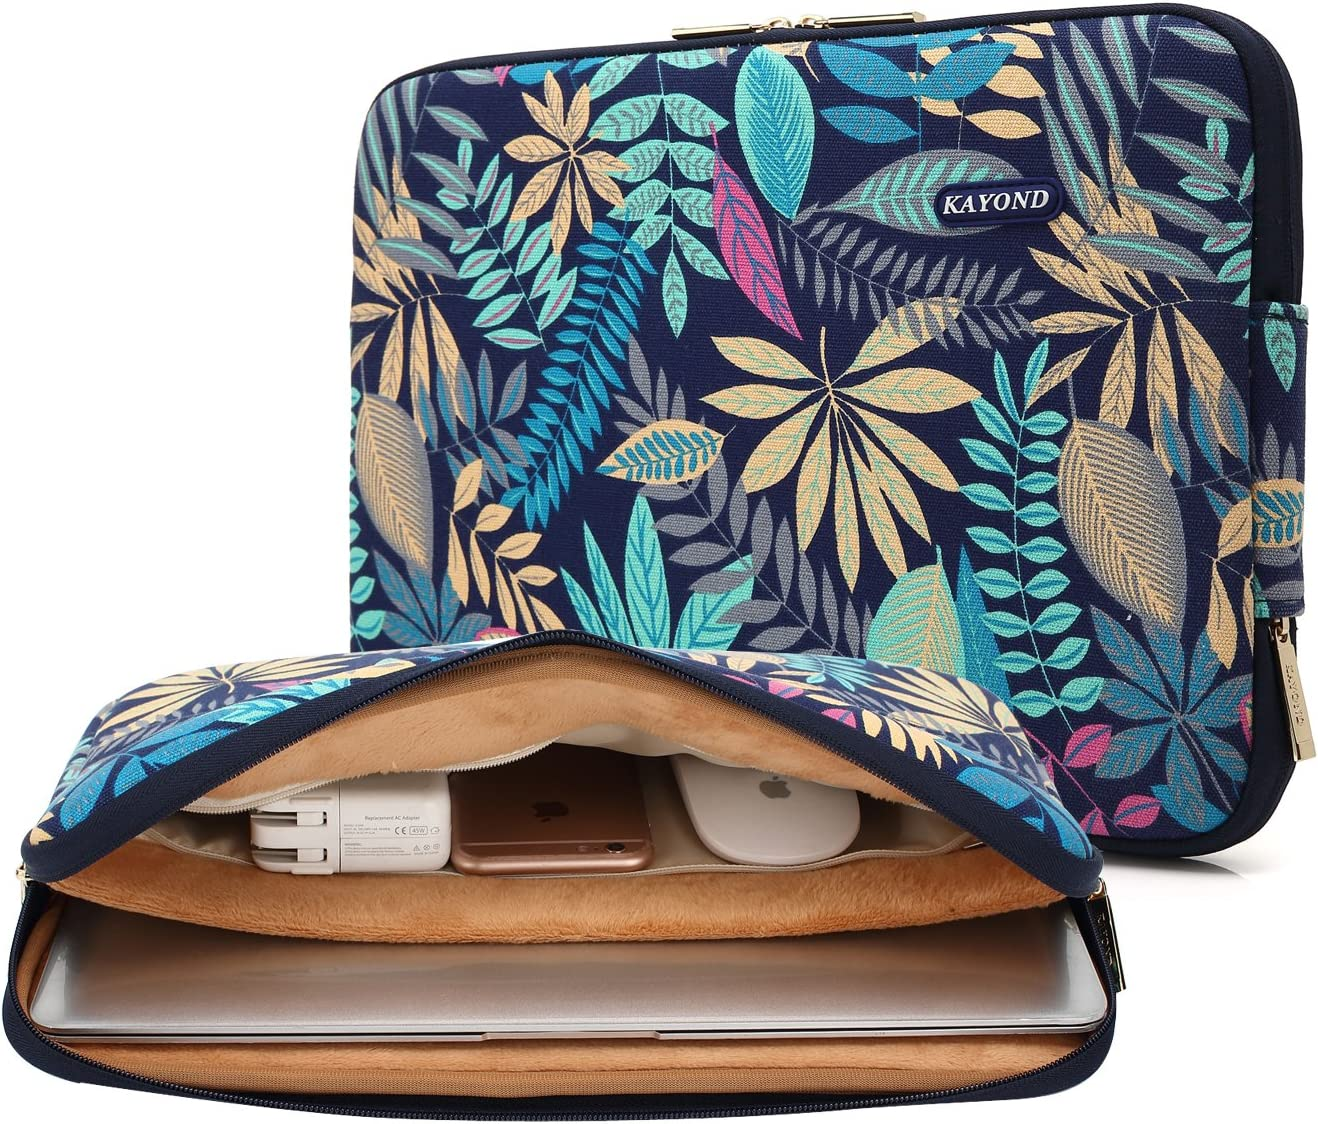 KAYOND Canvas Water-Resistant for 11-11.6 Inch Laptop Sleeve Case Bag (11-11.6 Inches, Forest Series Bule)